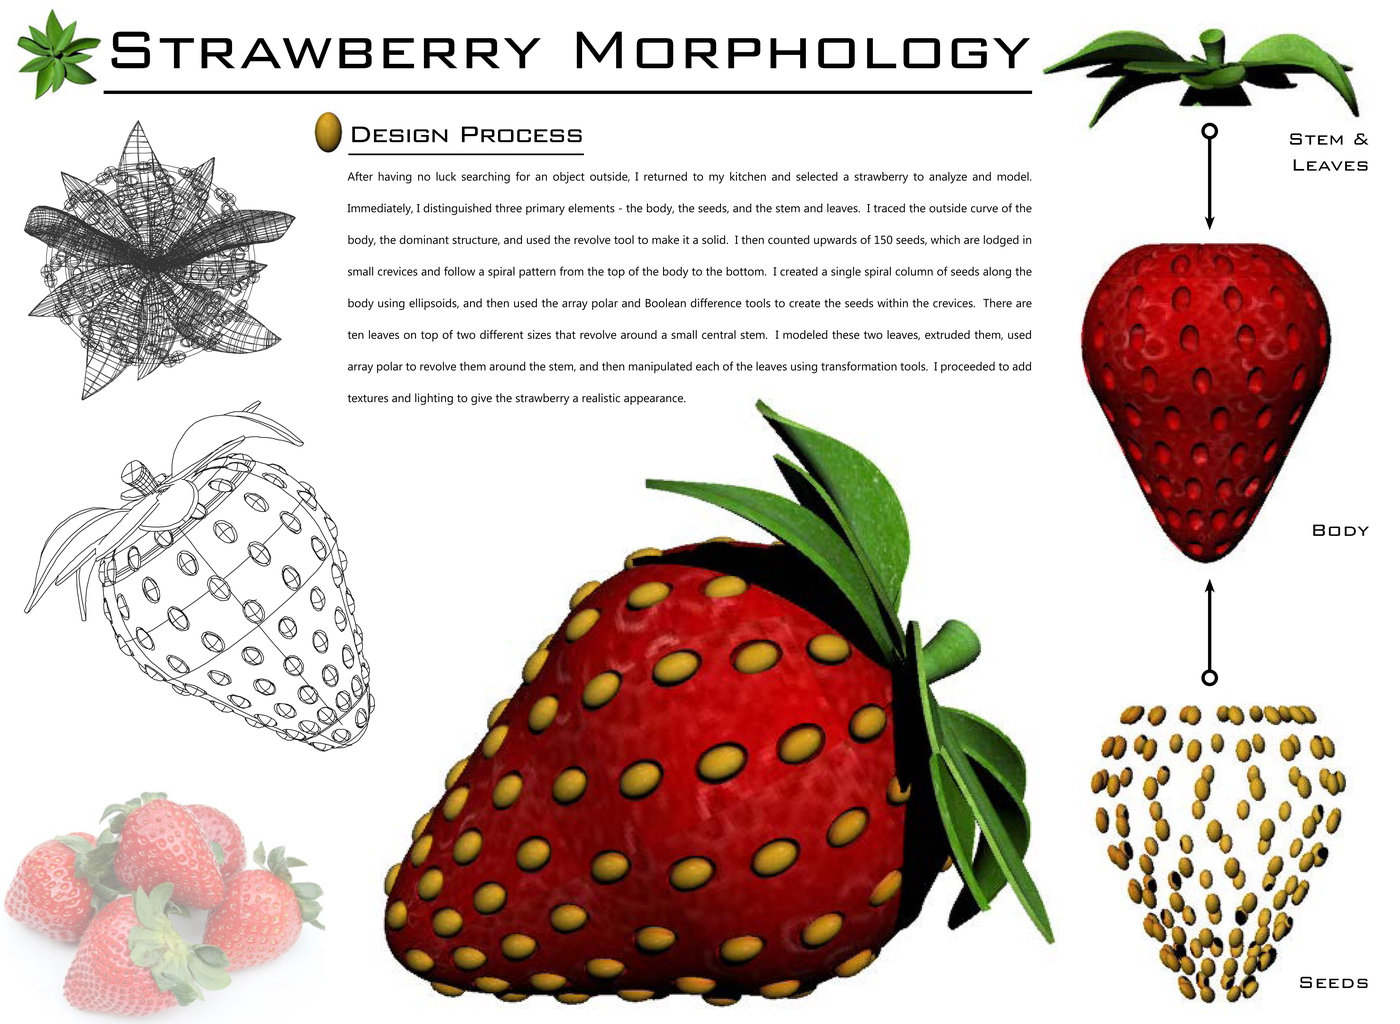 flower diagram with labeled parts strawberry morphology by john a luongo at coroflot com  strawberry morphology by john a luongo at coroflot com